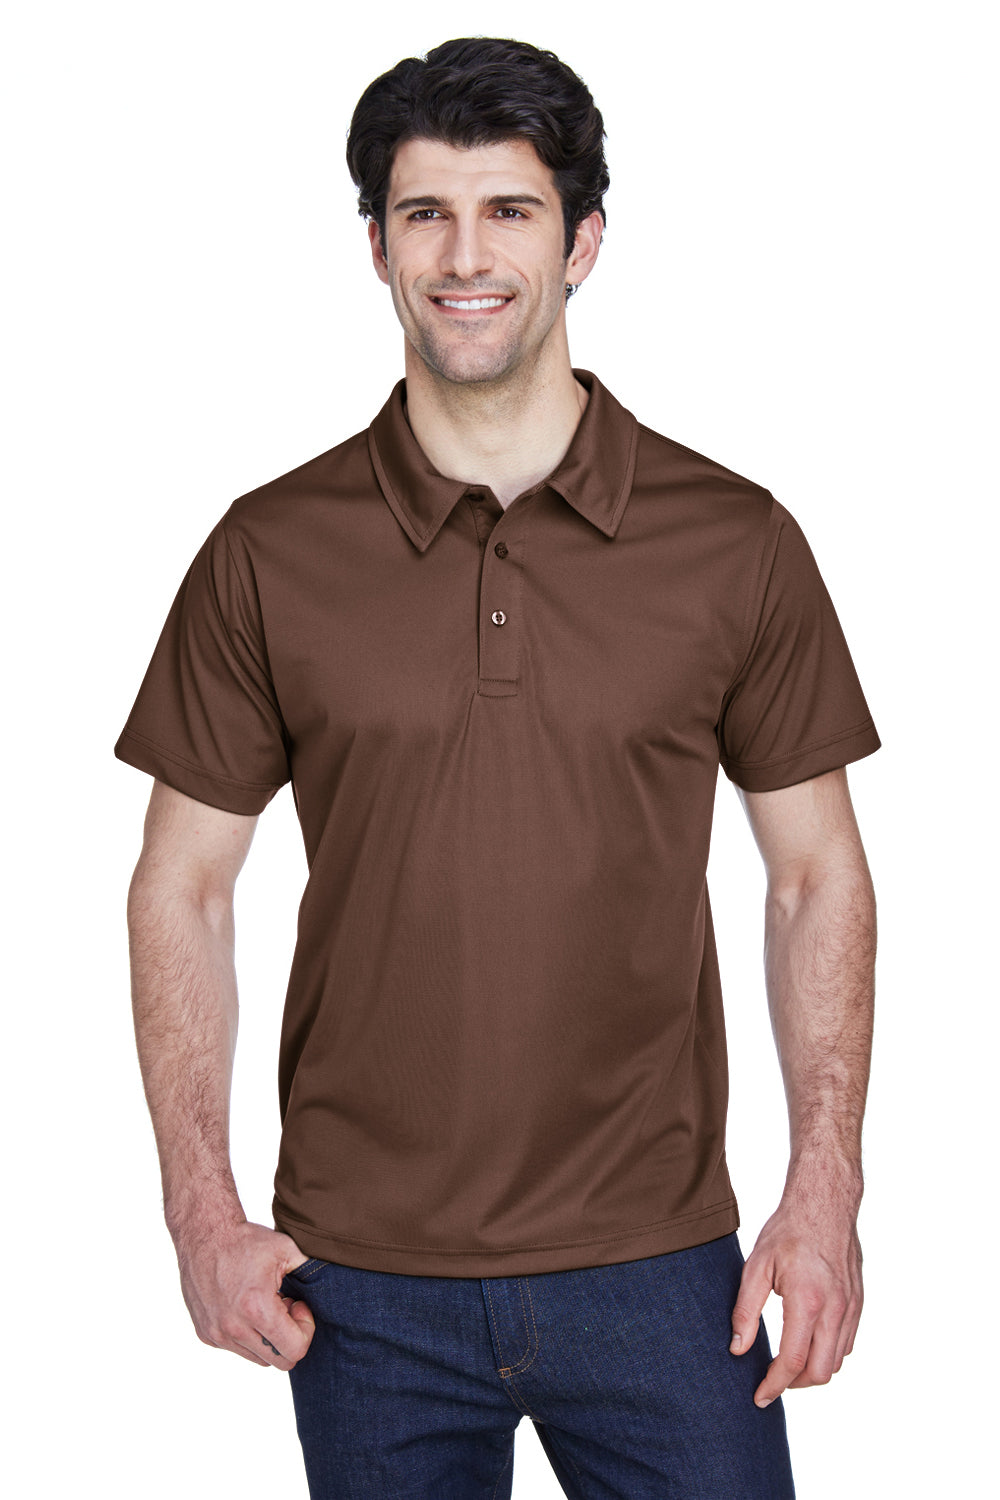 Team 365 TT21 Mens Command Performance Moisture Wicking Short Sleeve Polo Shirt Brown Front